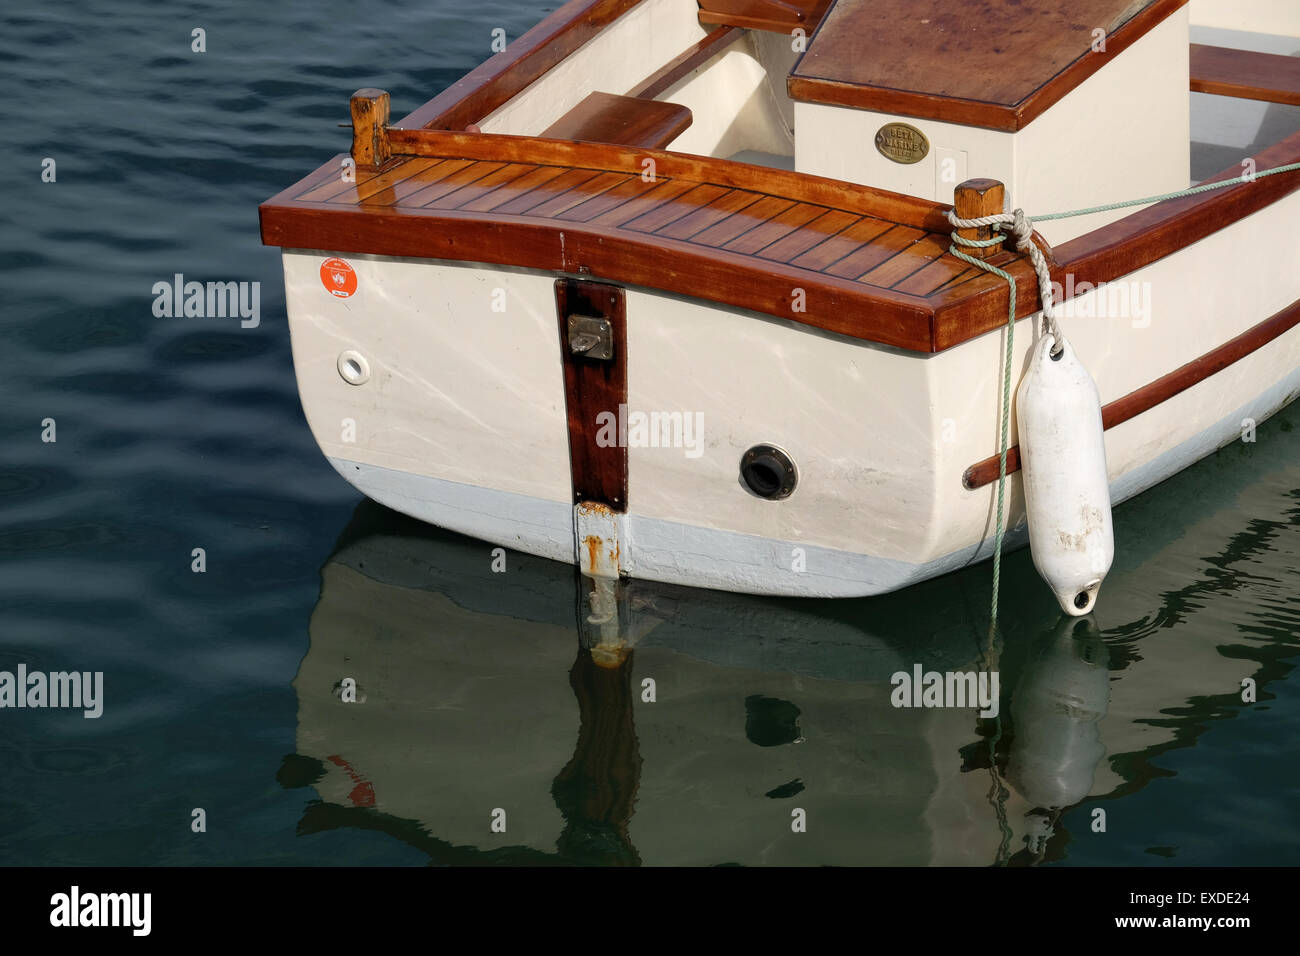 Small wooden rowing boat with polished wood - Stock Image